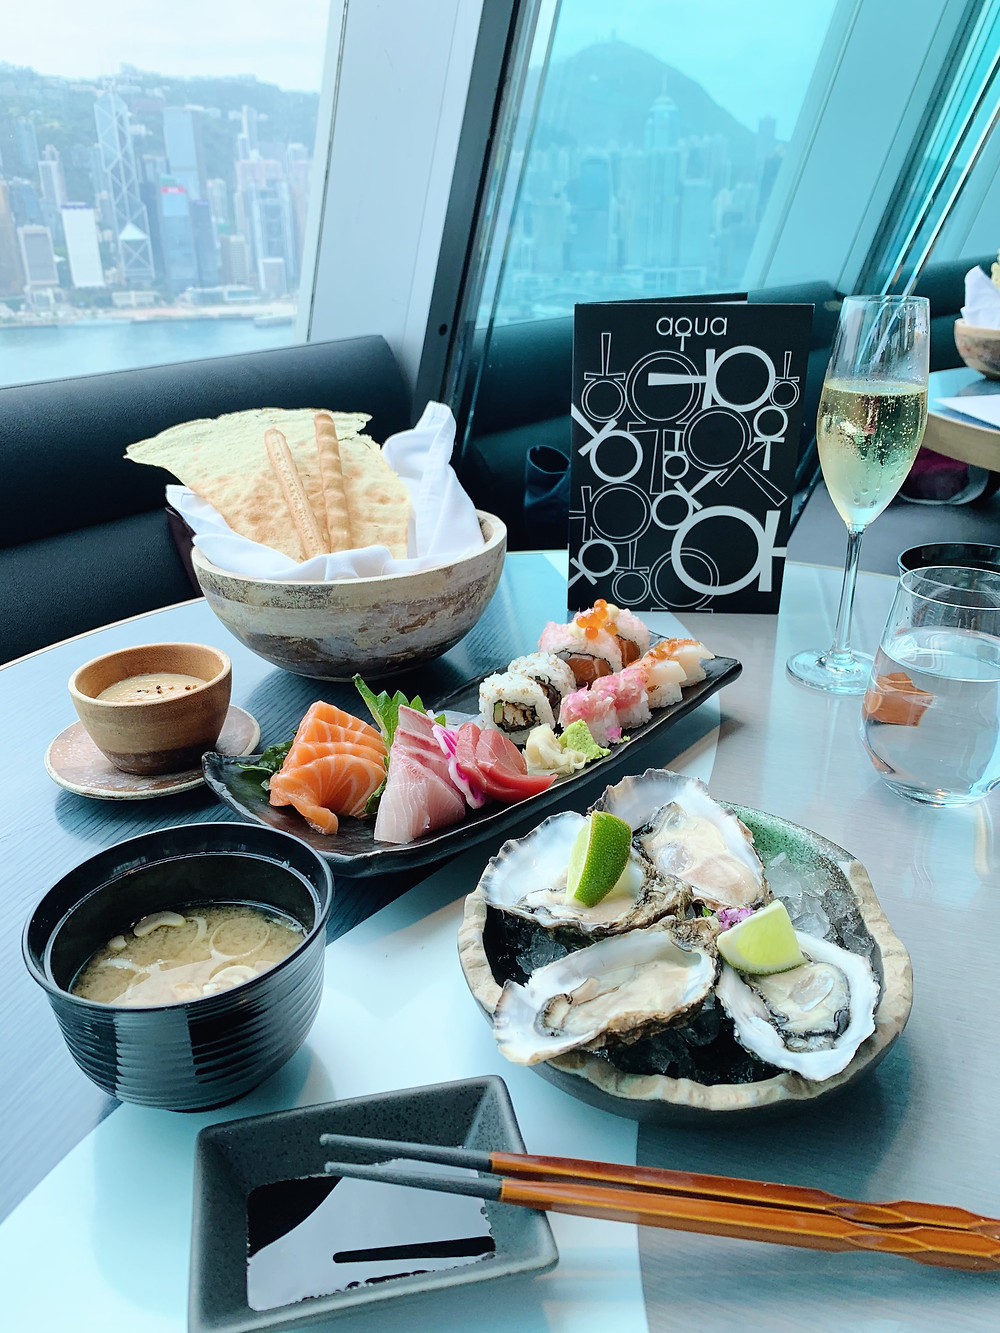 brunch at aqua restaurant in Hong Kong